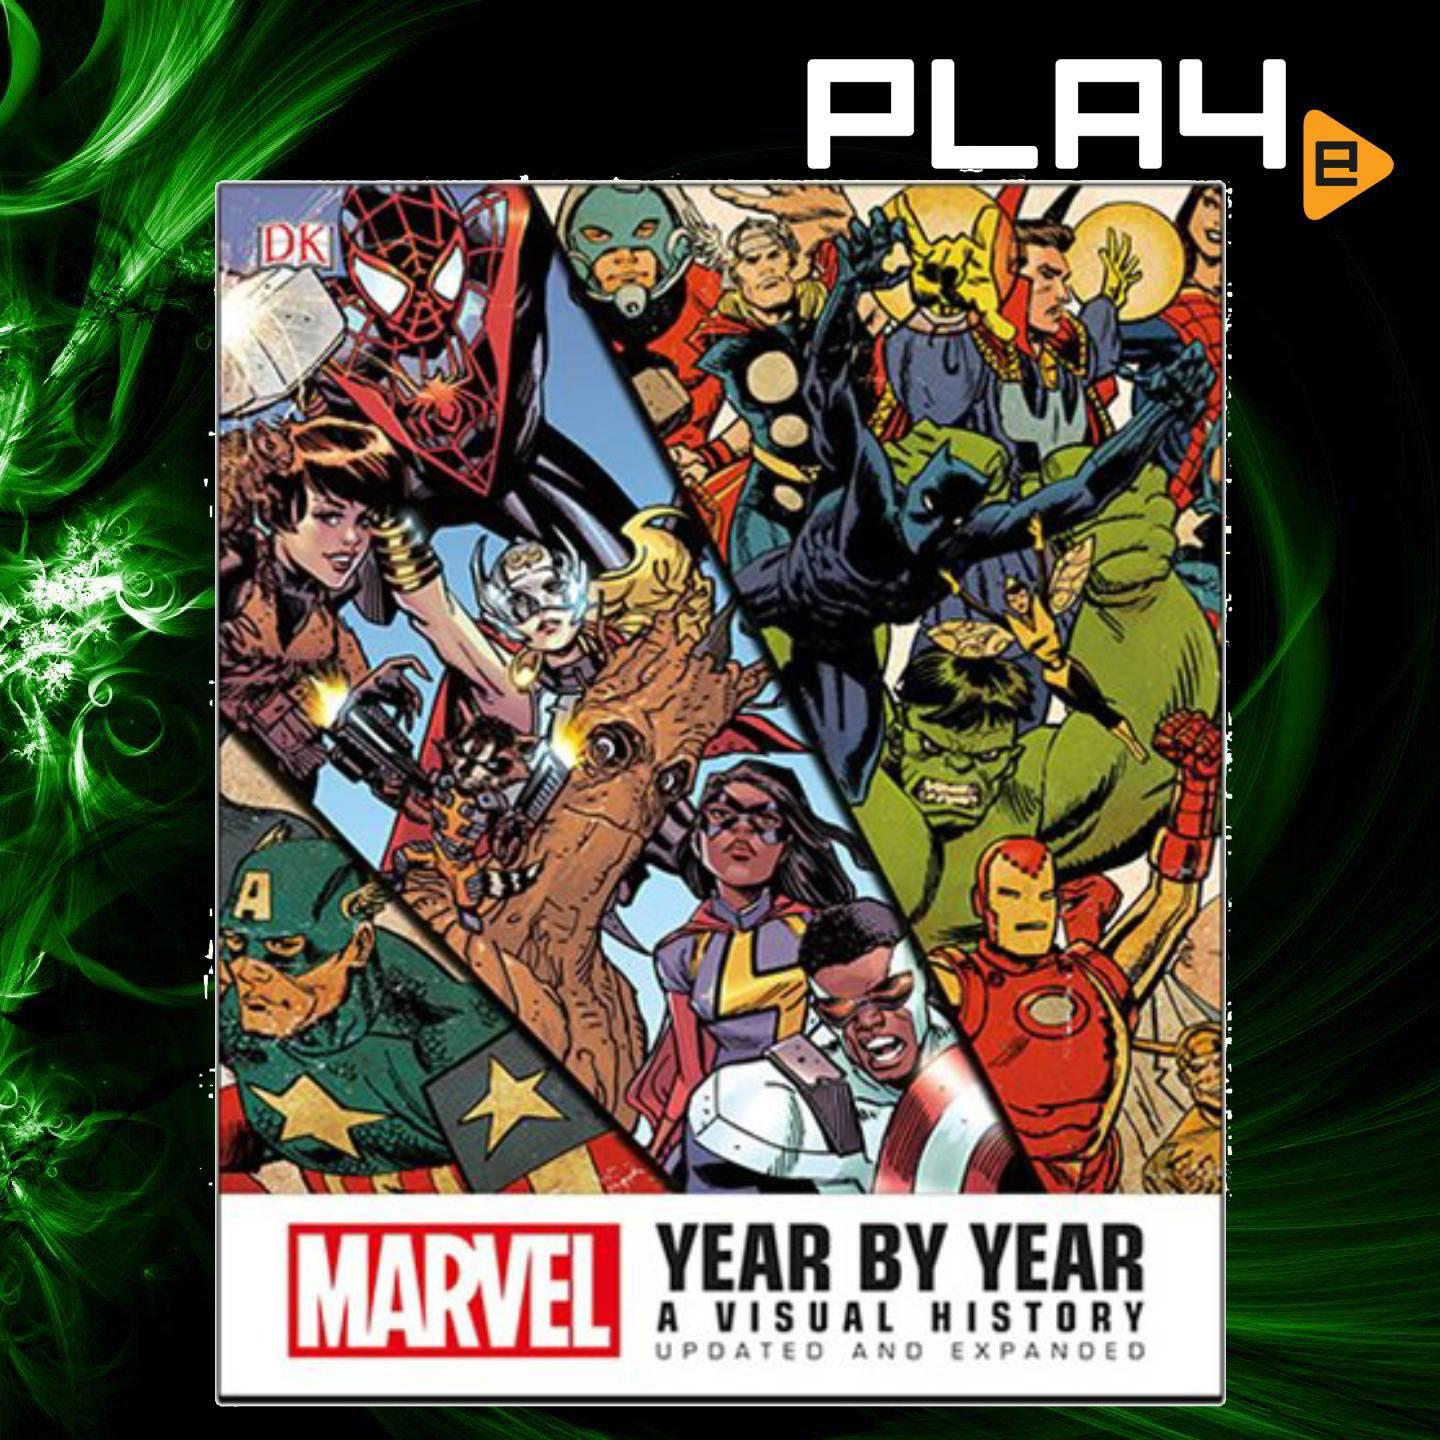 Marvel Year by Year A Visual History Updated book